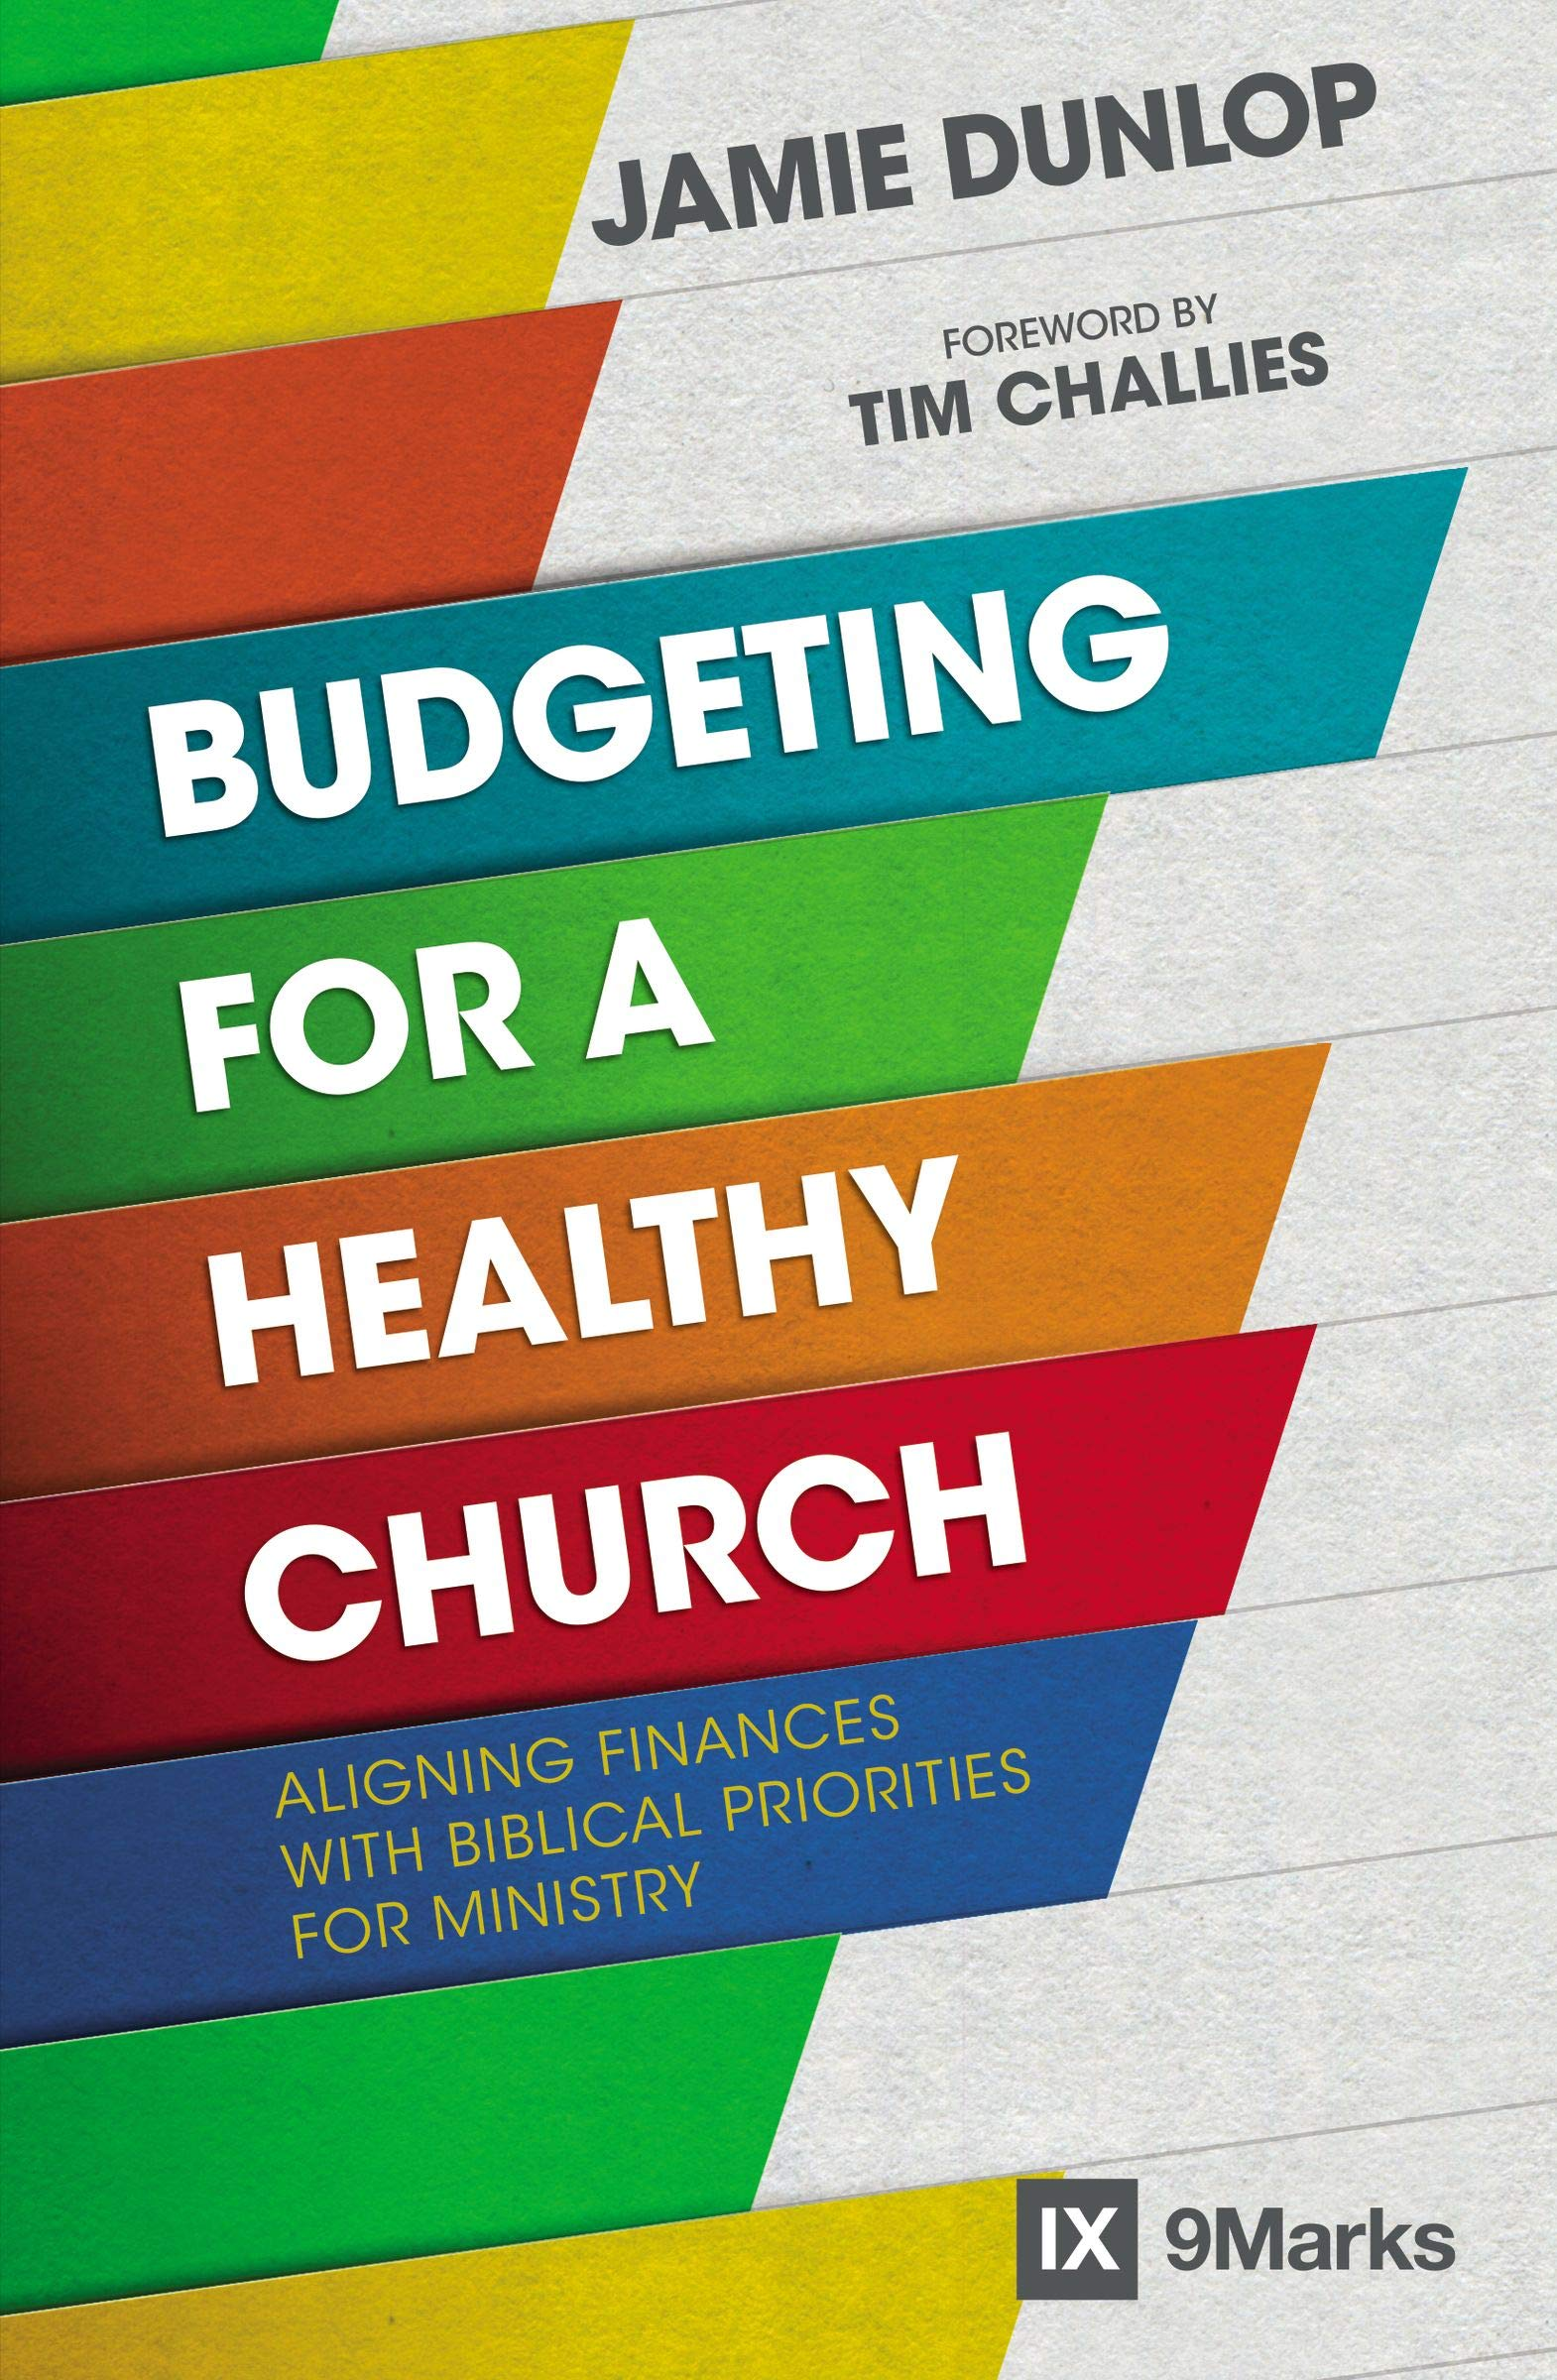 Budgeting For A Healthy Church Aligning Finances With Biblical Priorities For Ministry 9marks Dunlop Jamie Tim Challies 9780310093862 Amazon Com Books